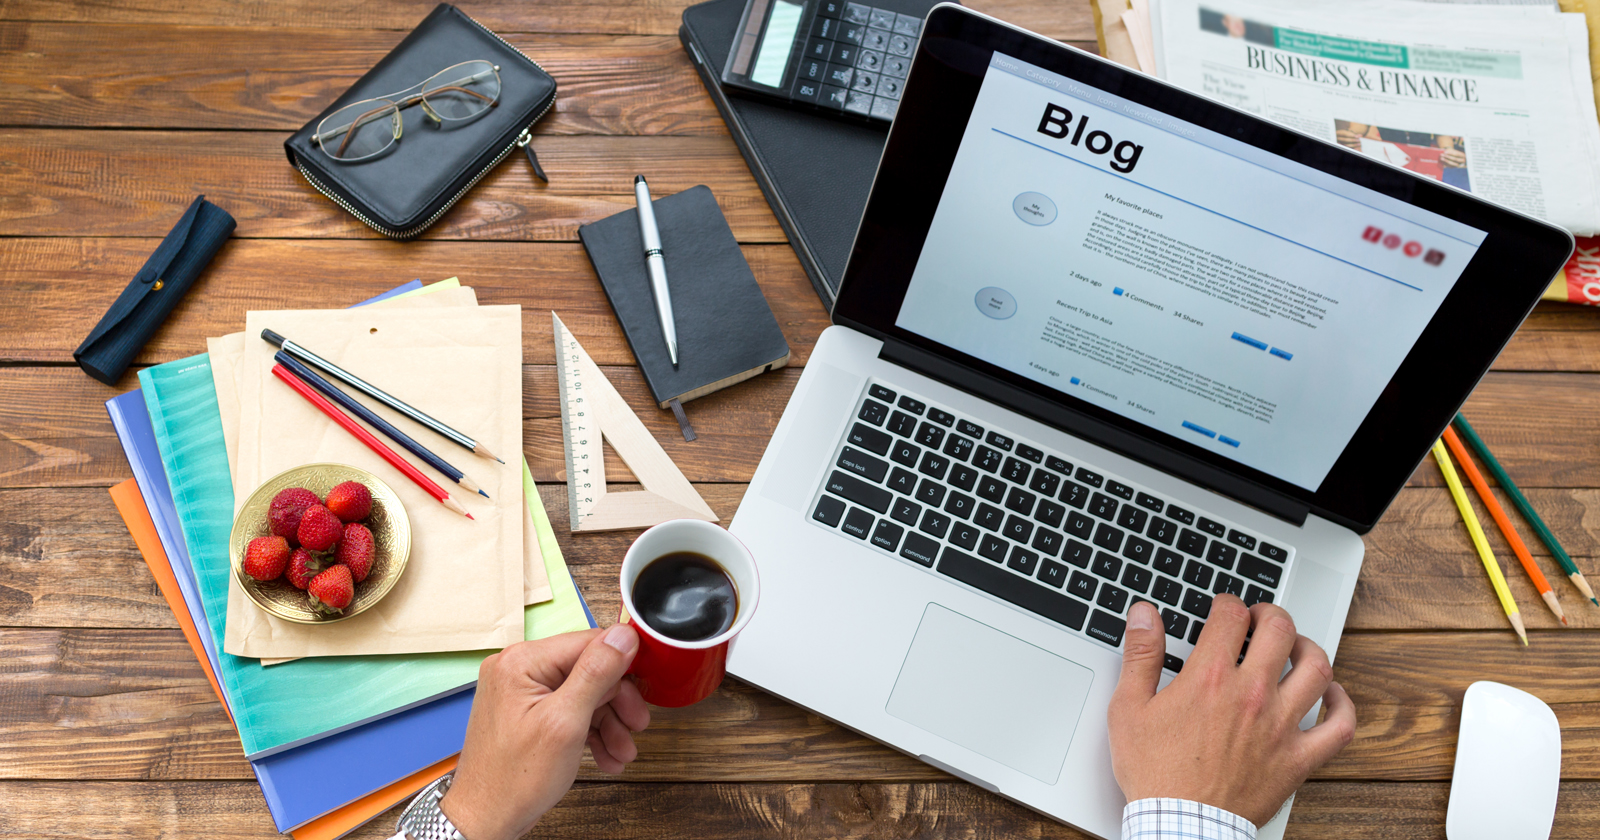 What can make a good blog post?